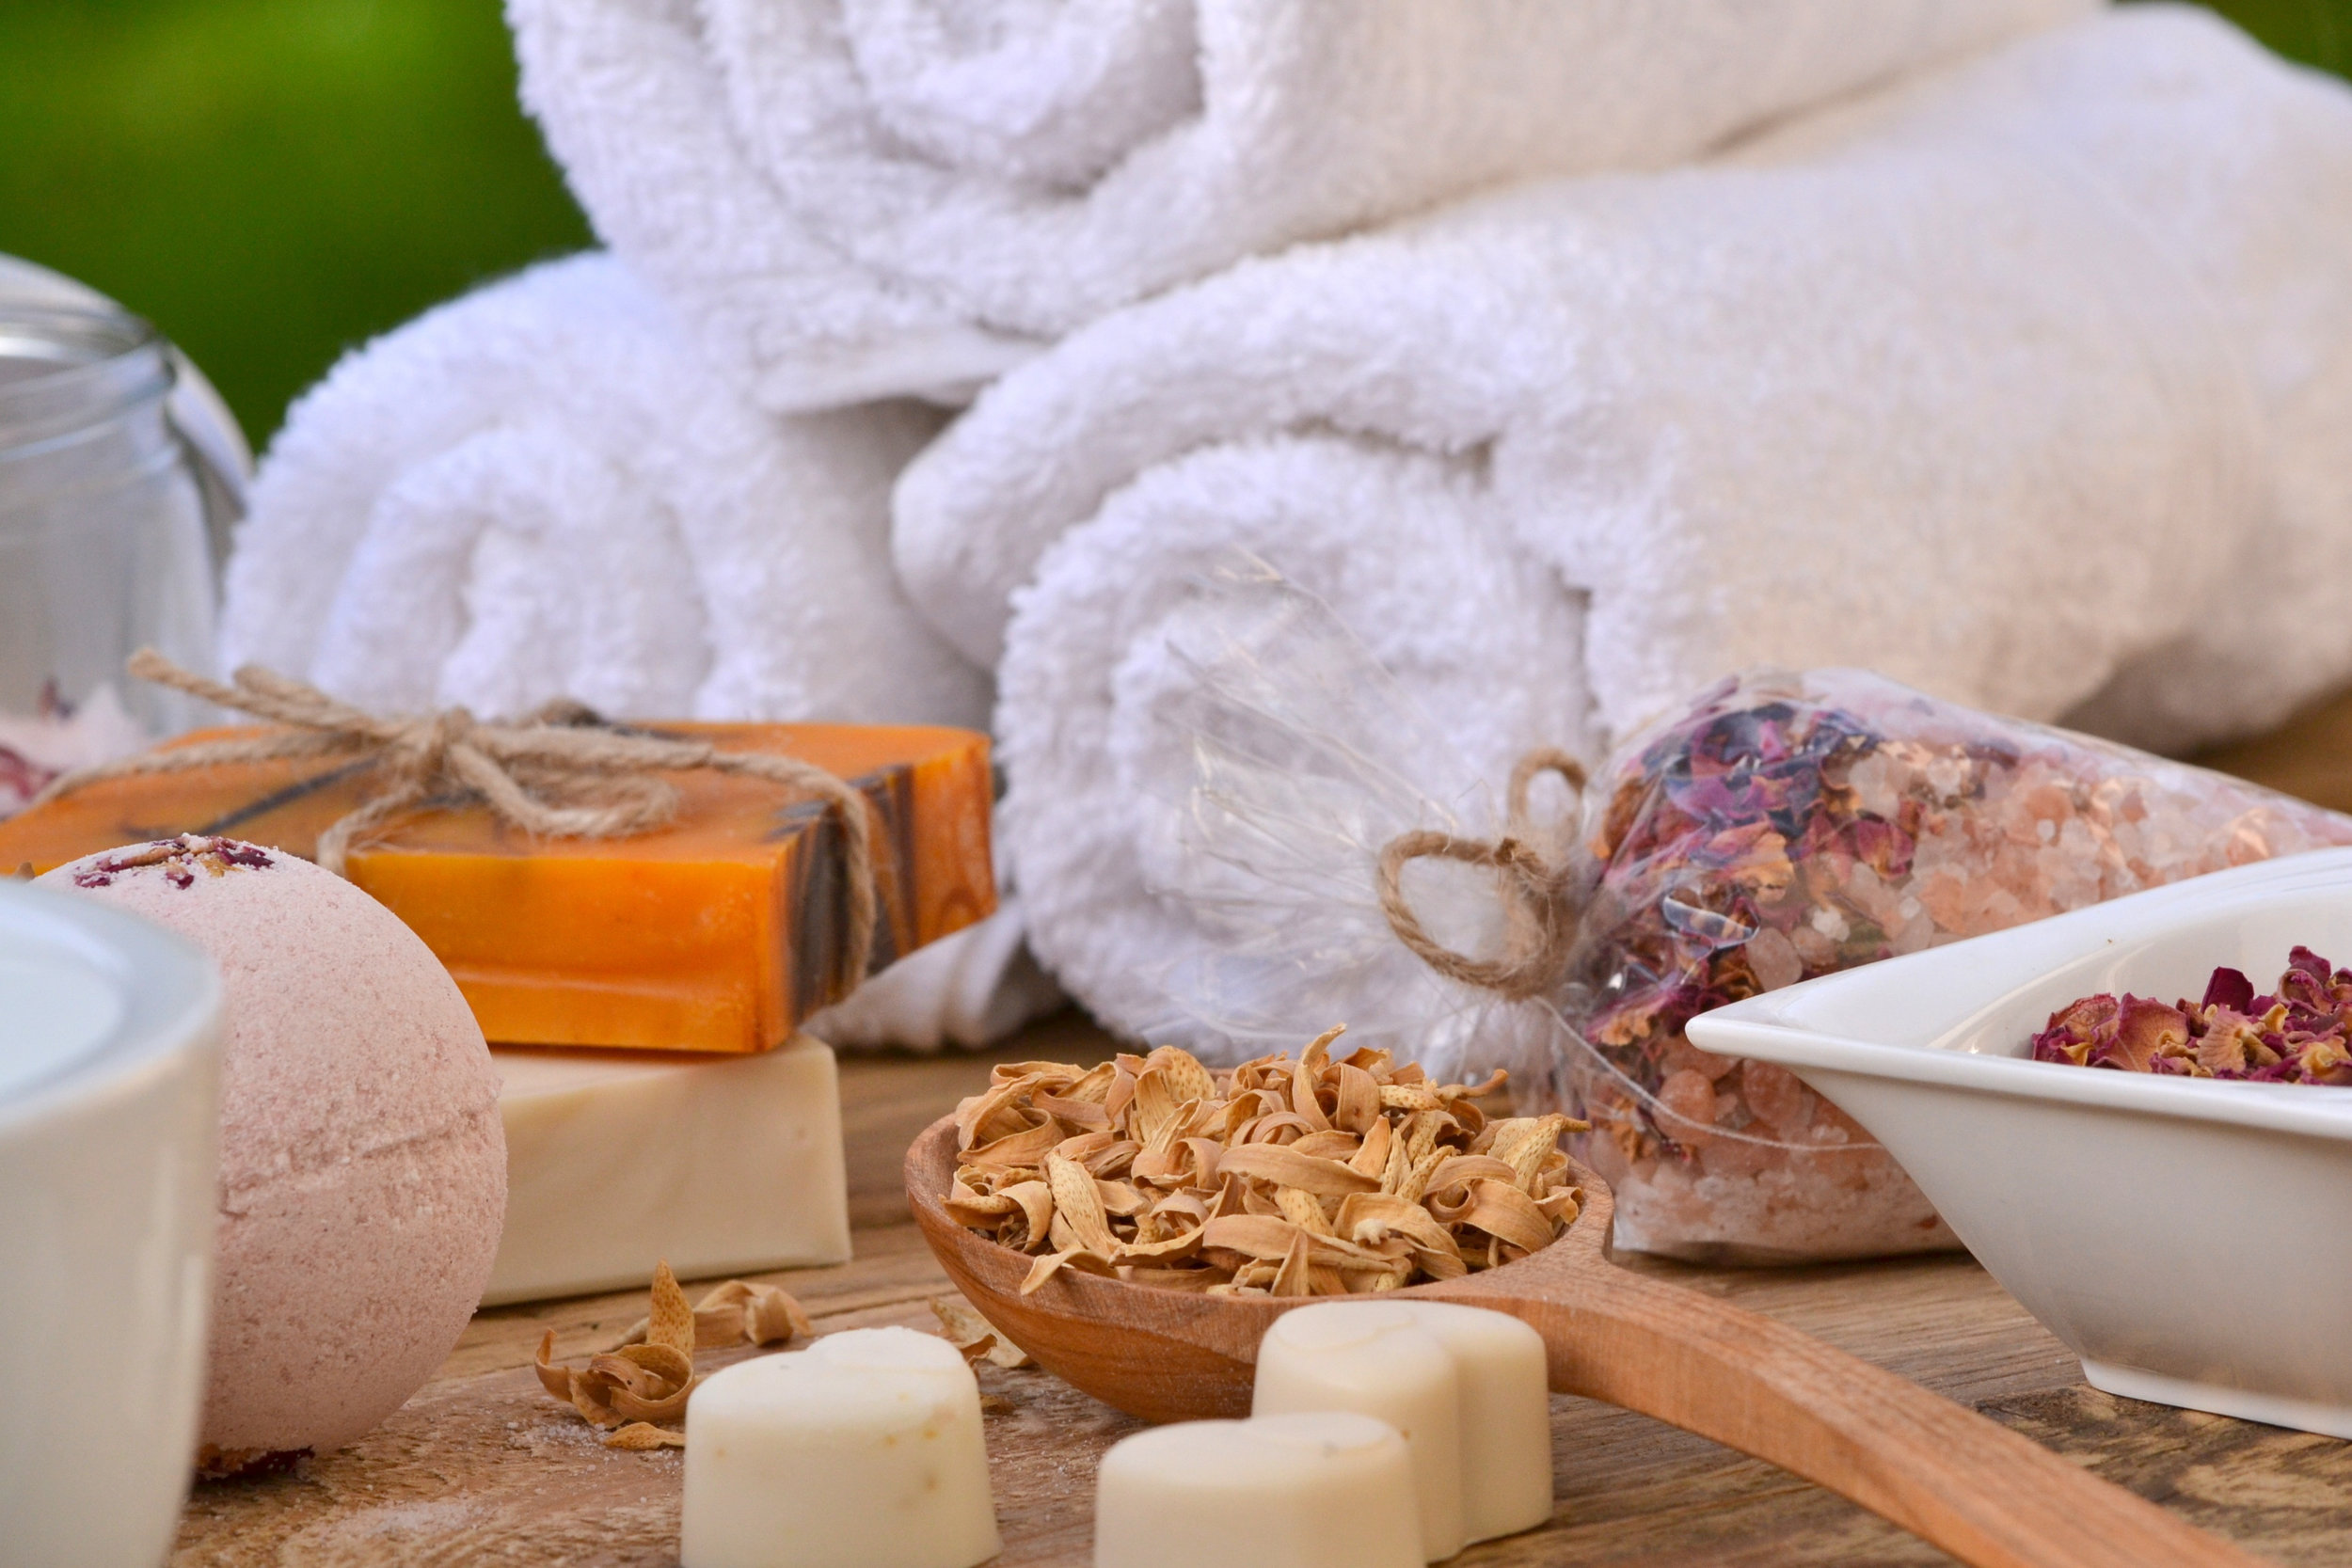 Canva - Spa Herbal Soaps and Cosmetics.jpg